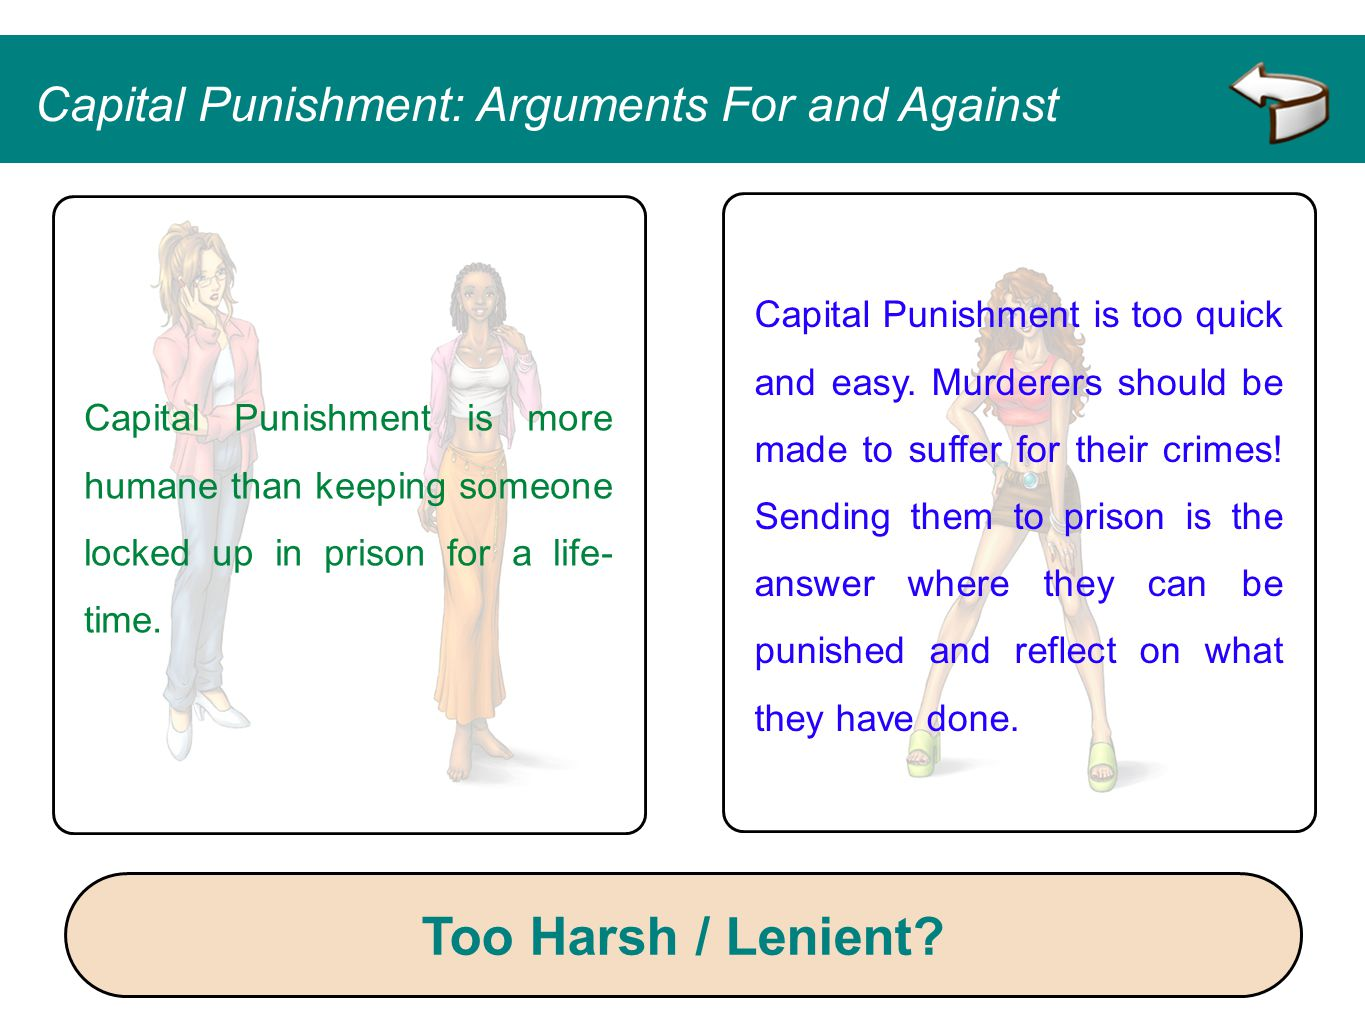 Too Harsh / Lenient Capital Punishment: Arguments For and Against